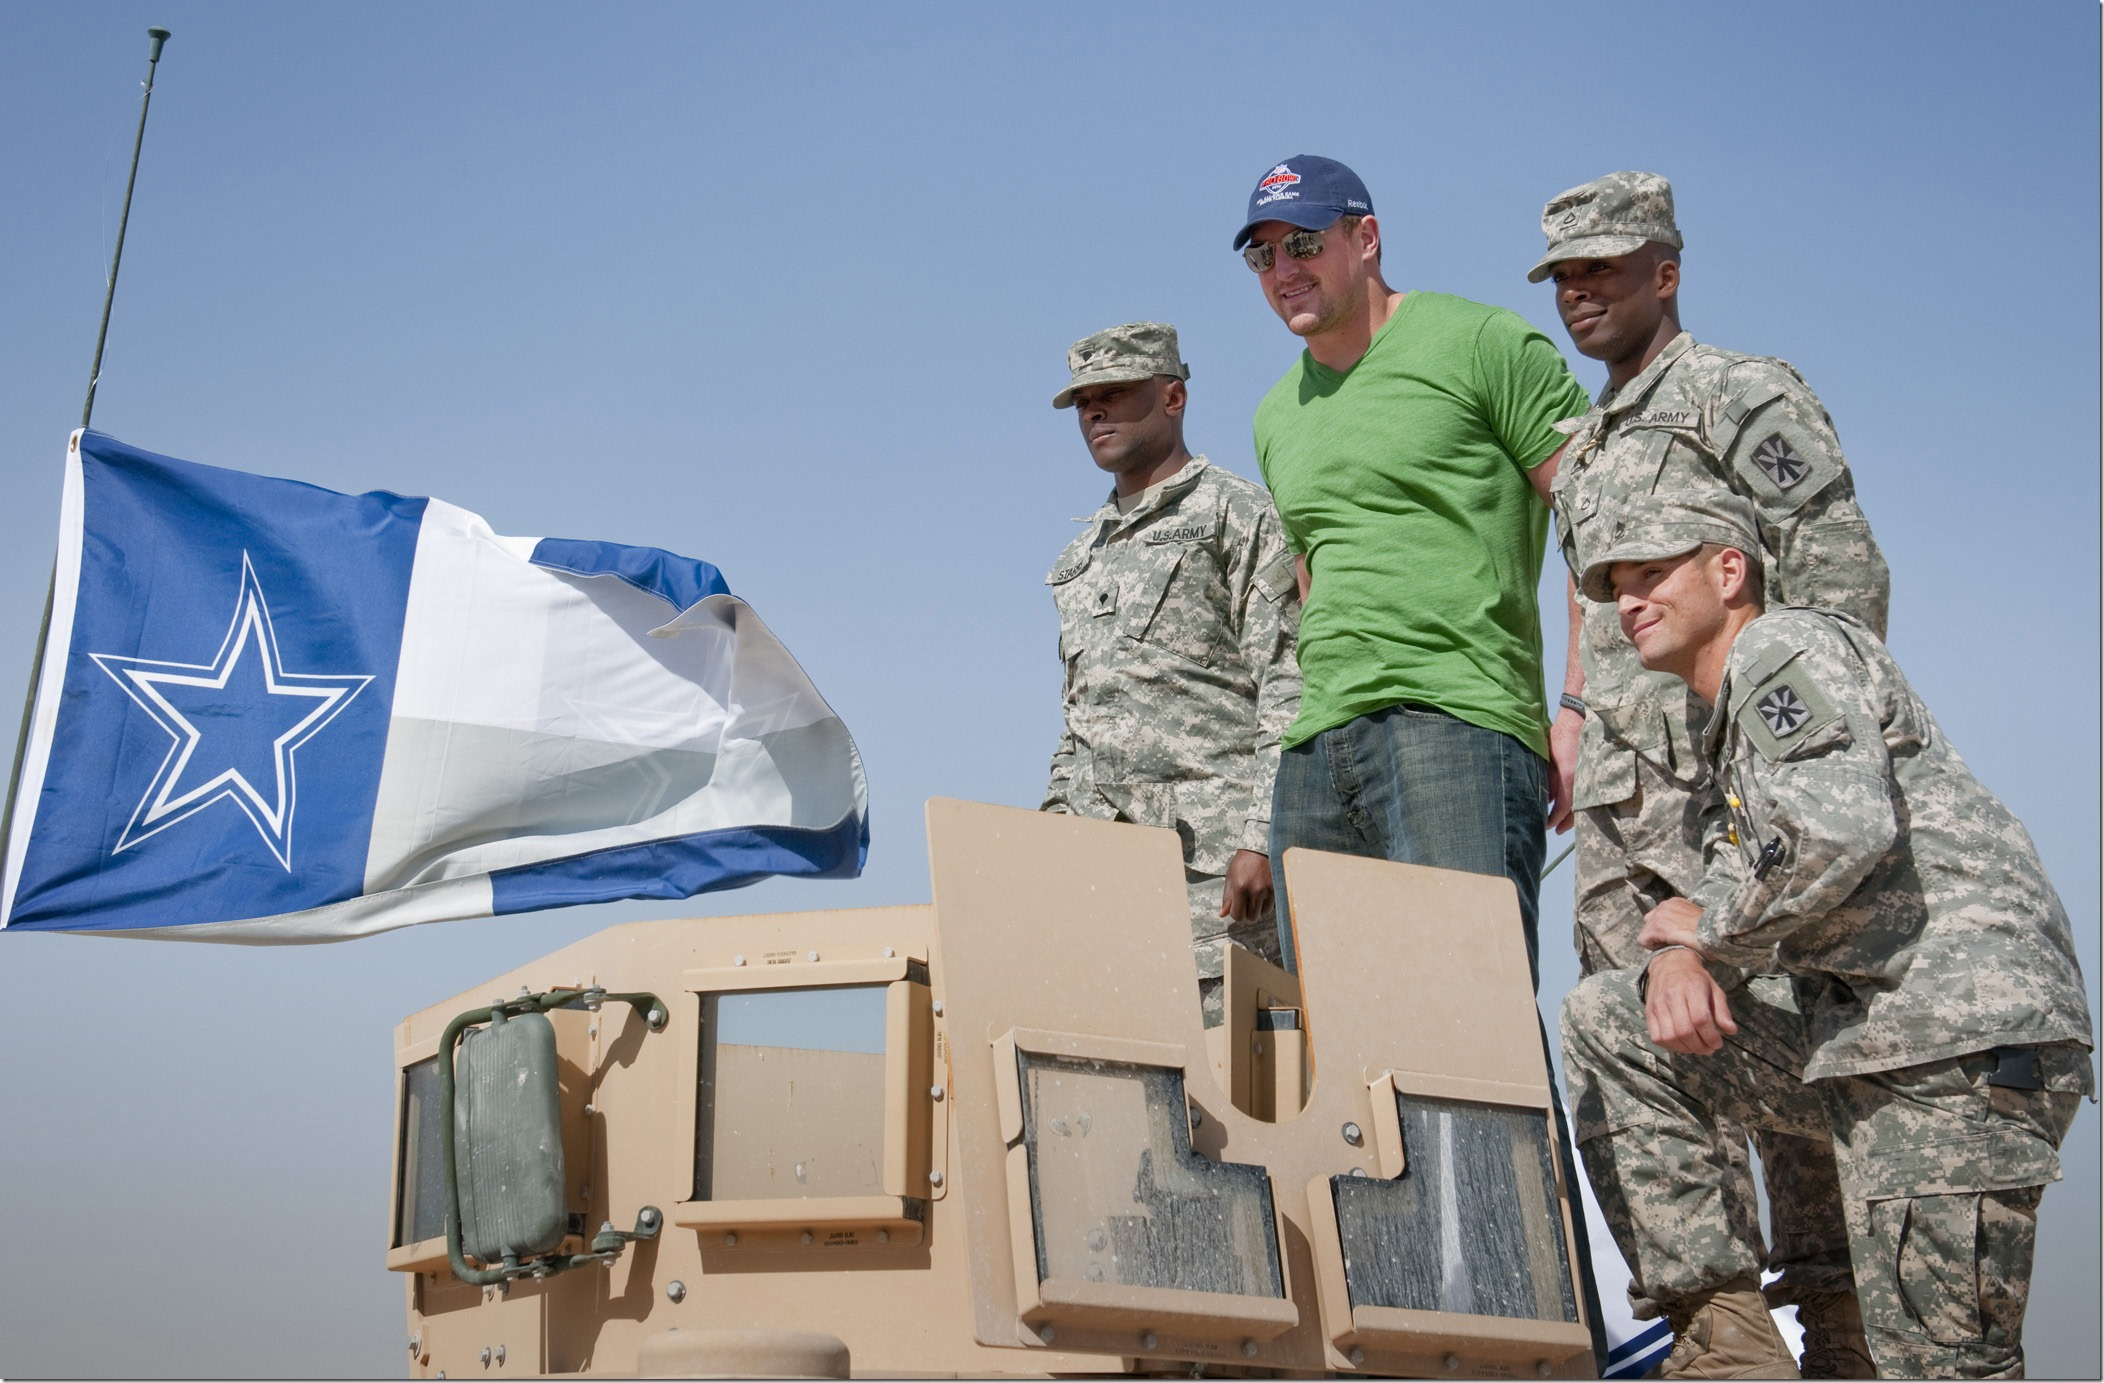 NFL player Jason Witten-Dallas Cowboys poses for a photo with Cowboys fans on top of a Humvee proudly displaying a Cowboys flag, which Witten later autographed.